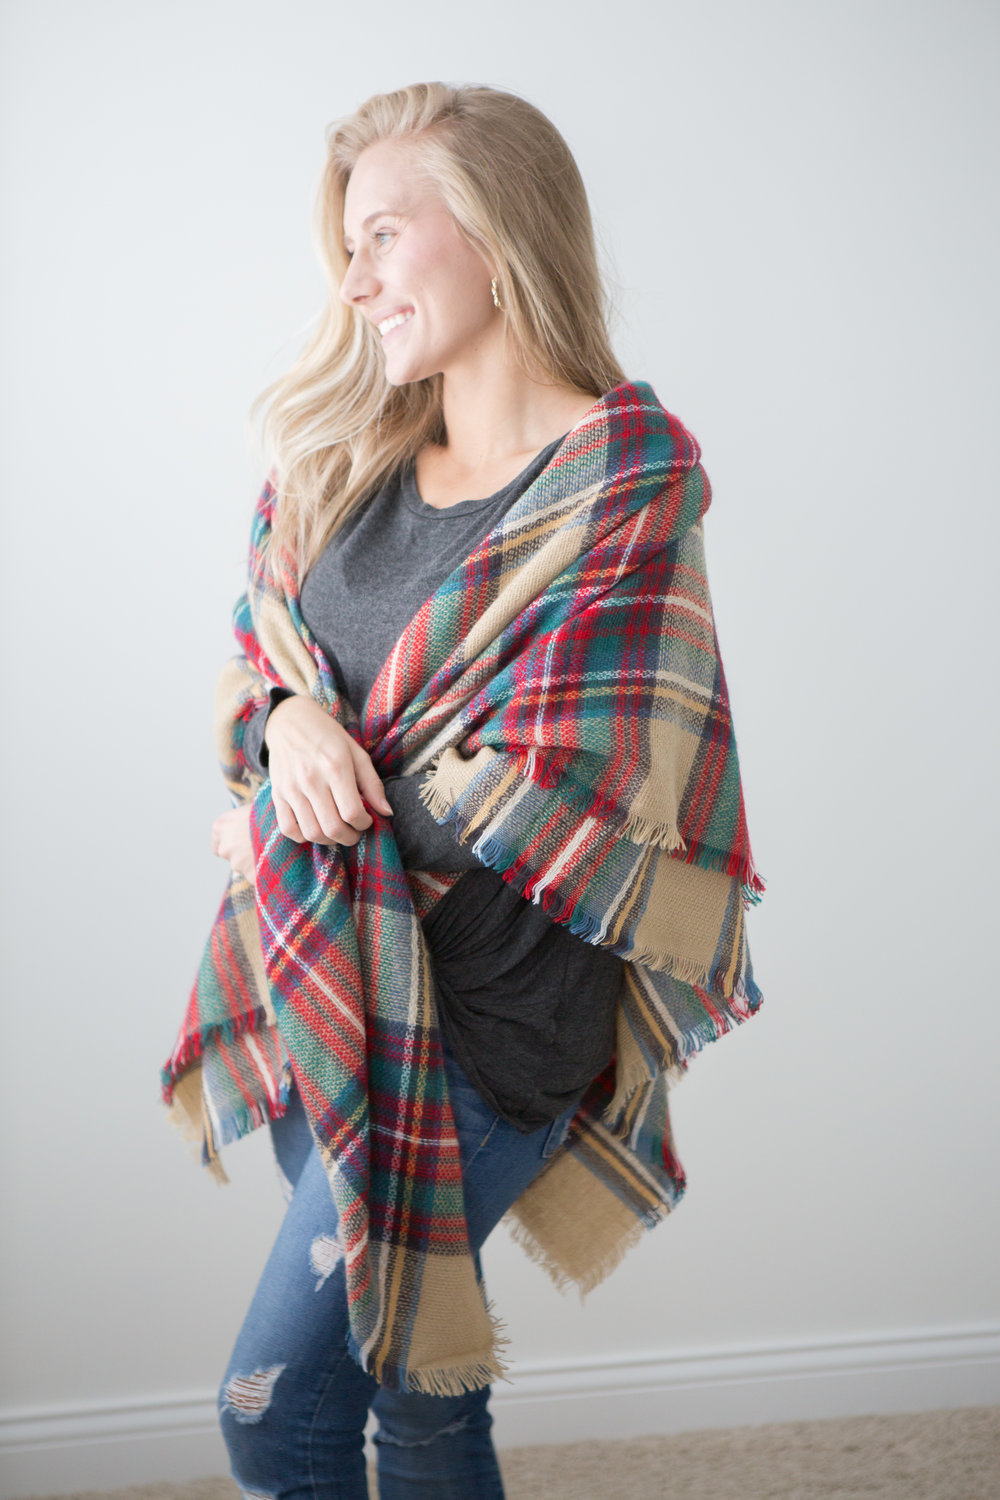 On The Paige Blog | Fall Fashion Prints and Colors | Plaid